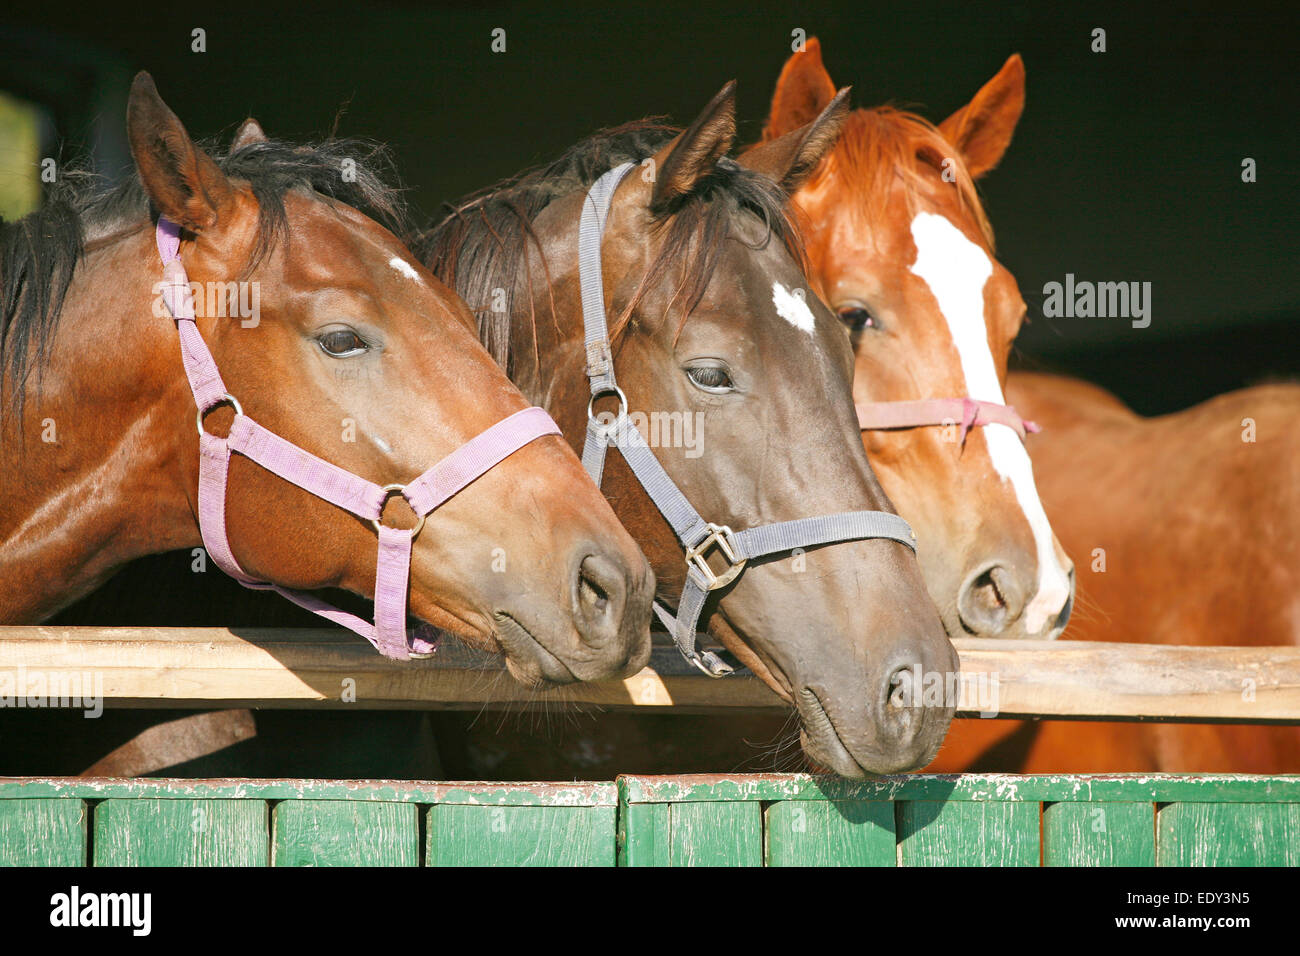 Beautiful Thoroughbred Horses At The Barn Door Purebred Chestnut